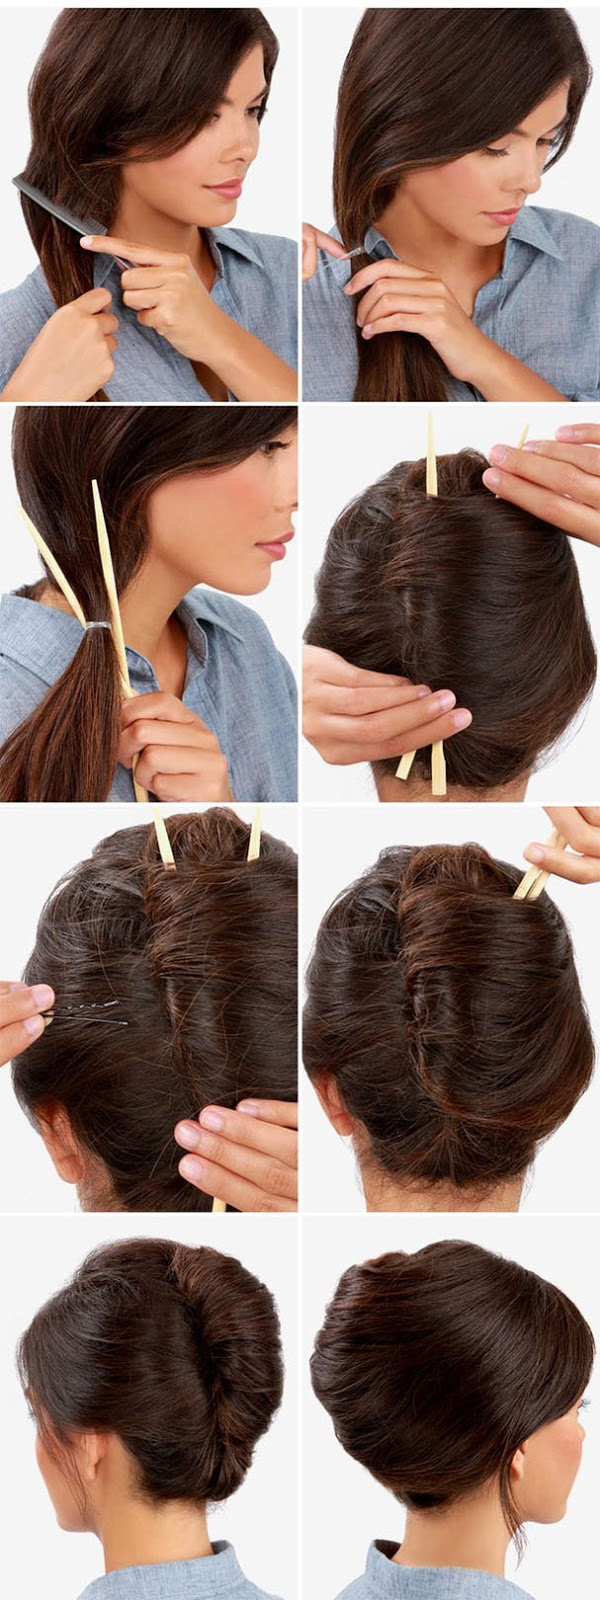 5 Hairstyles Tutorials For Well Combed Back Trends4everyone